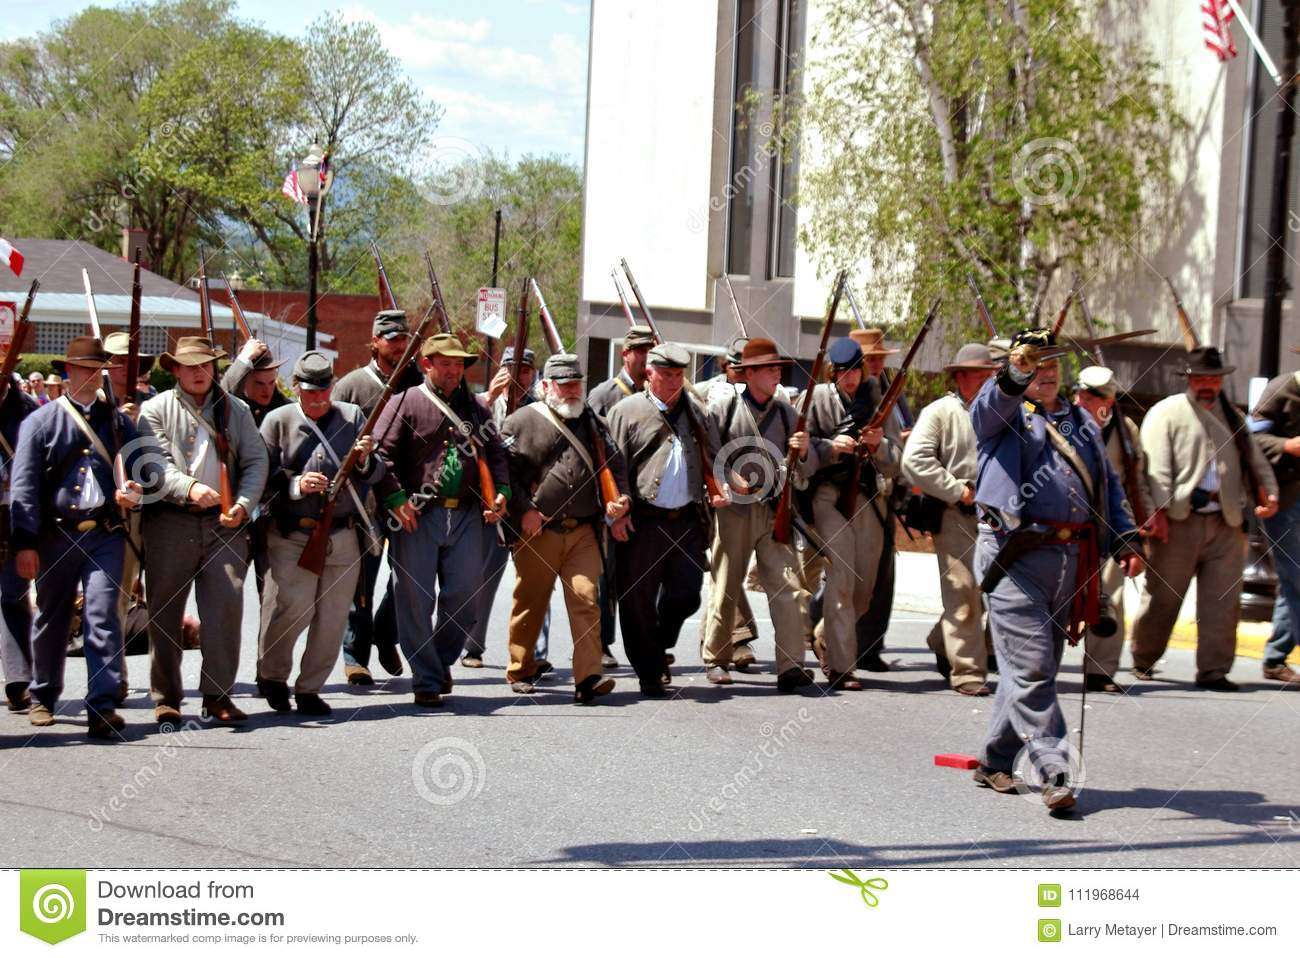 Group of Reenactors Parading in Bedford, Virginia - 2